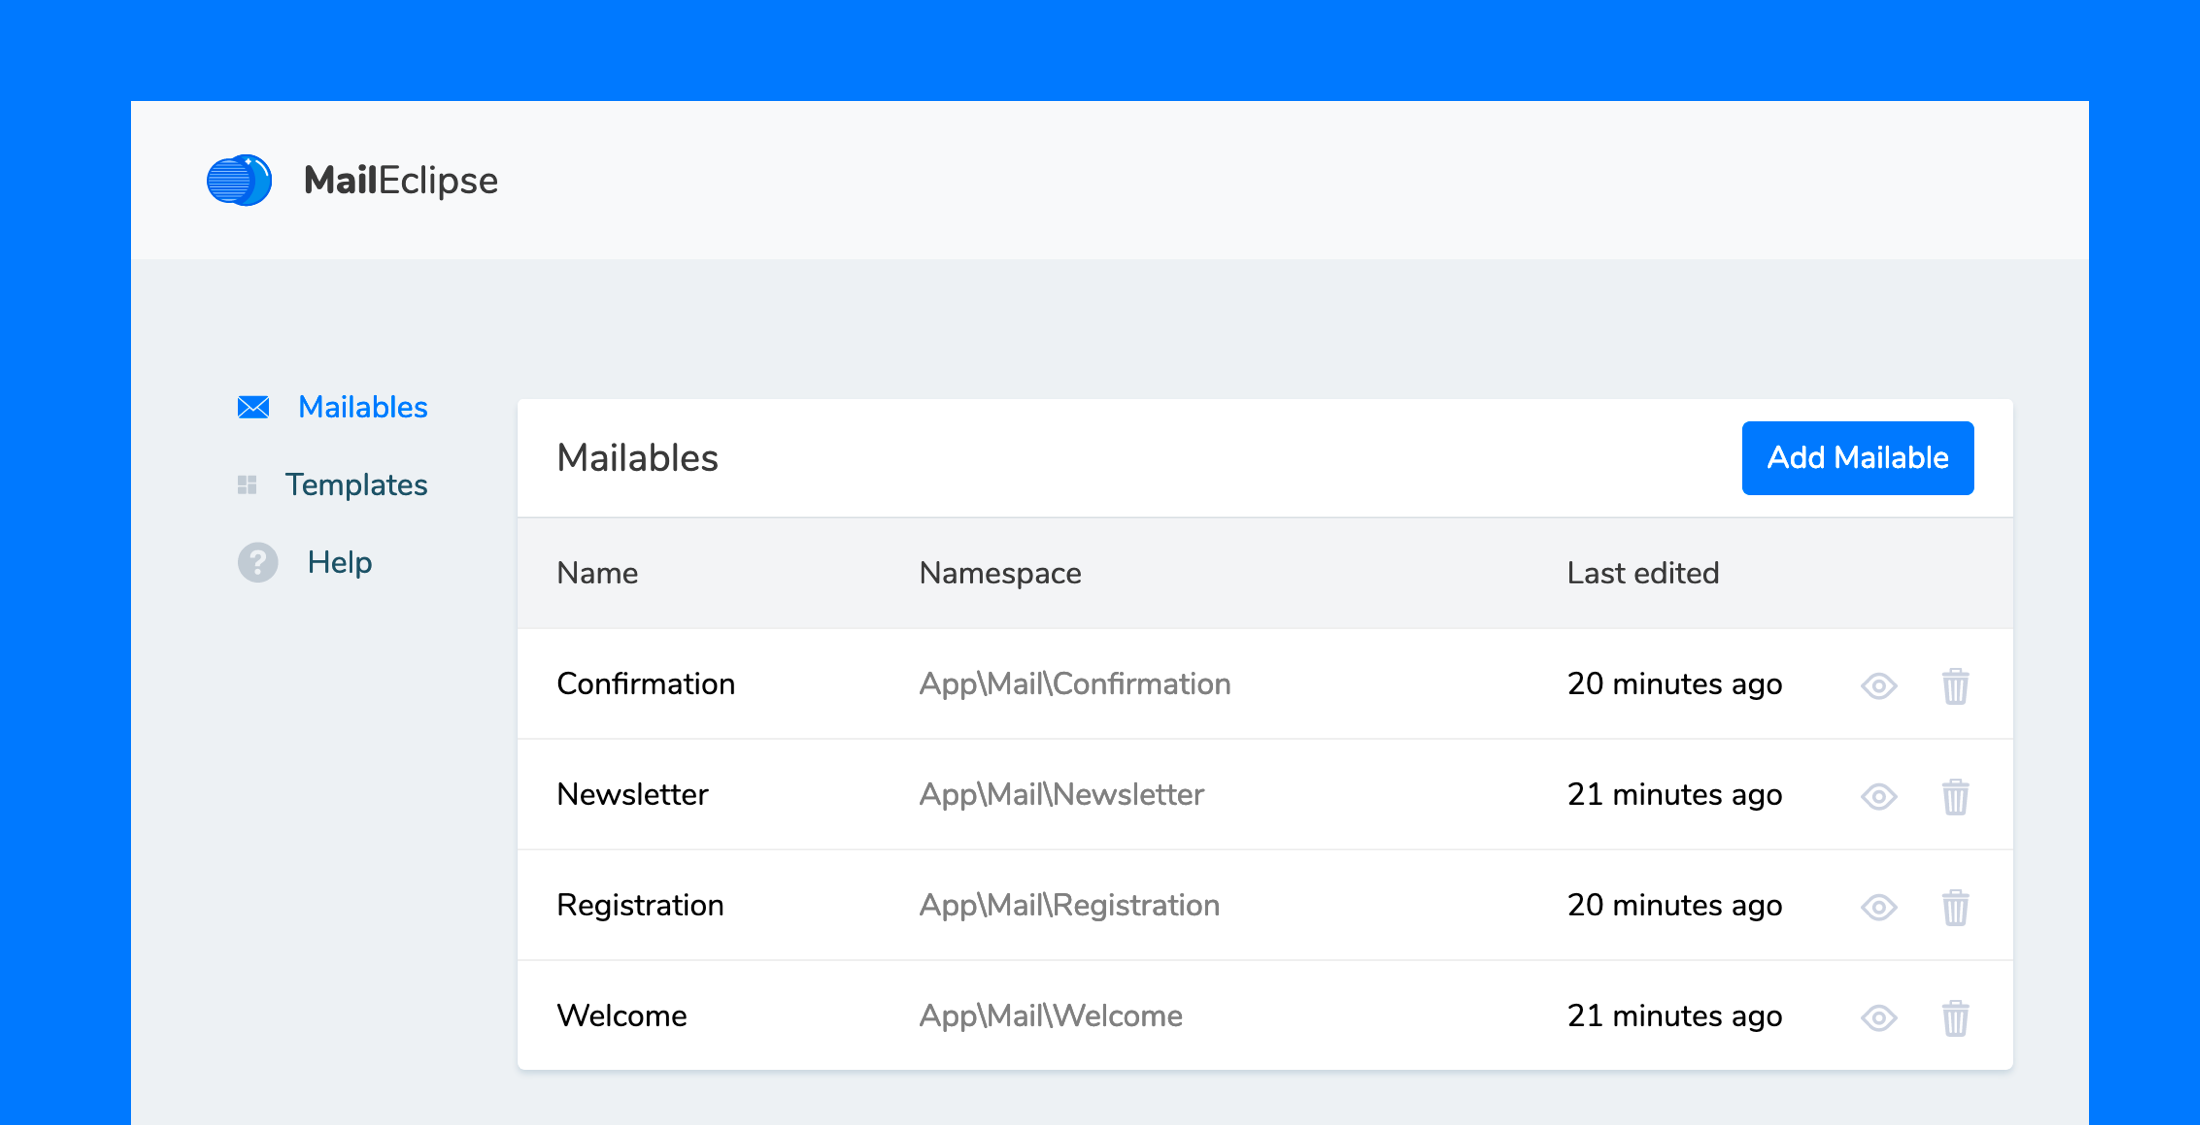 maileclipse-laravel-mail-editor.png